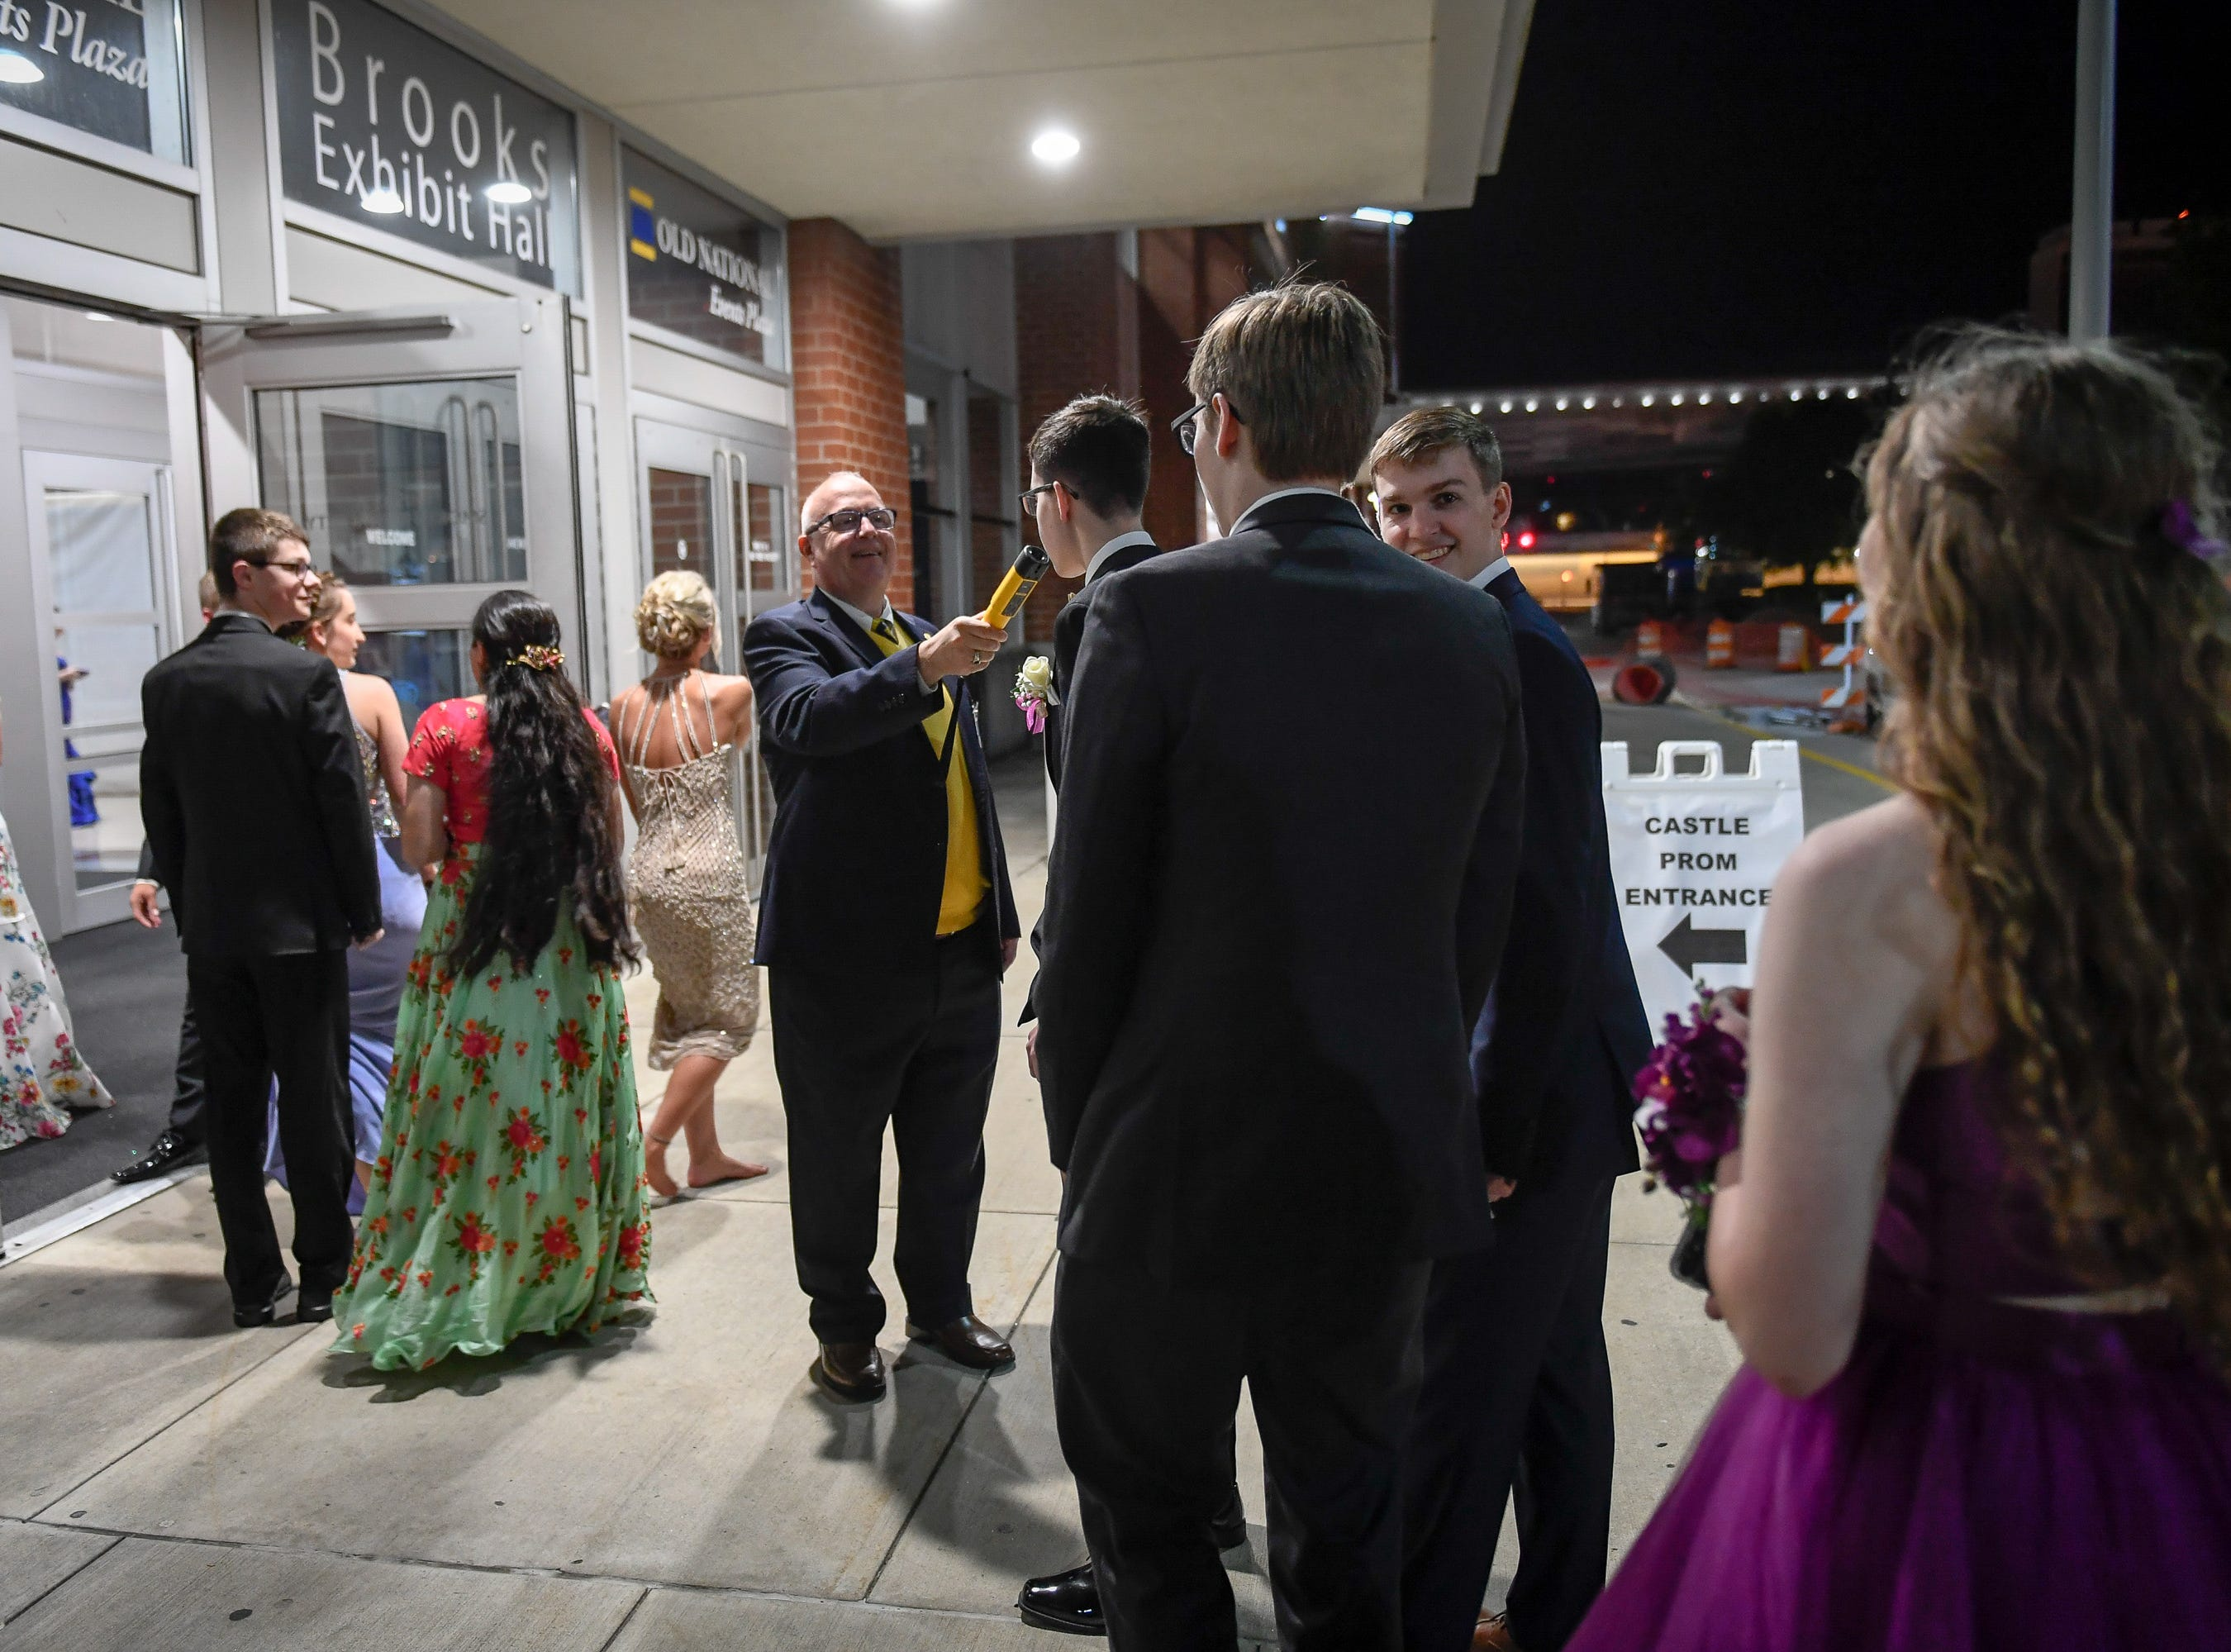 Richard Lance uses a breathalyzer to check couples entering the Castle High School prom, held at the Old National Events Center Plaza Saturday, April 27, 2019.